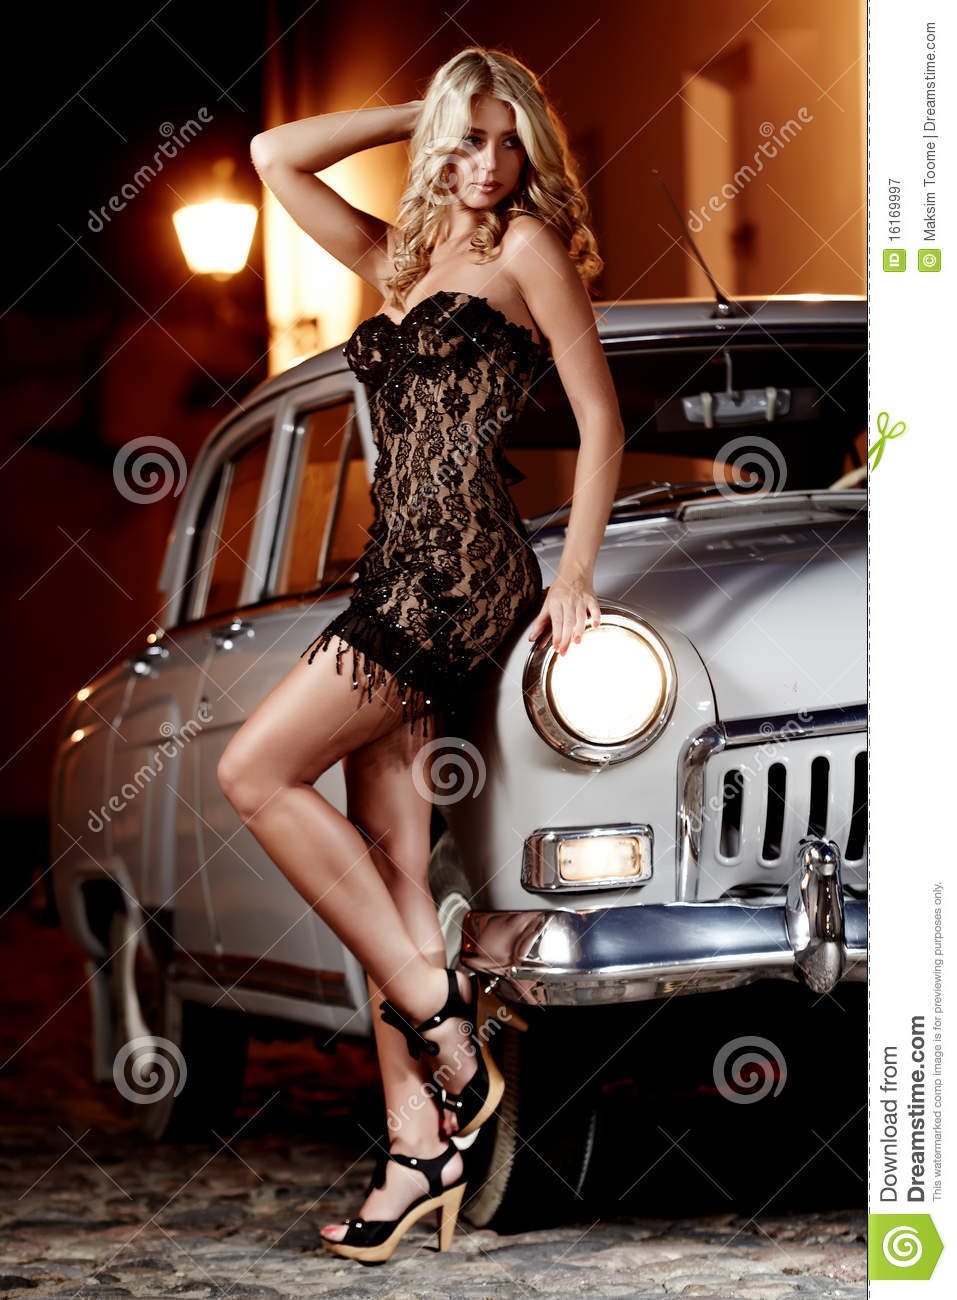 Car babe best picture 81